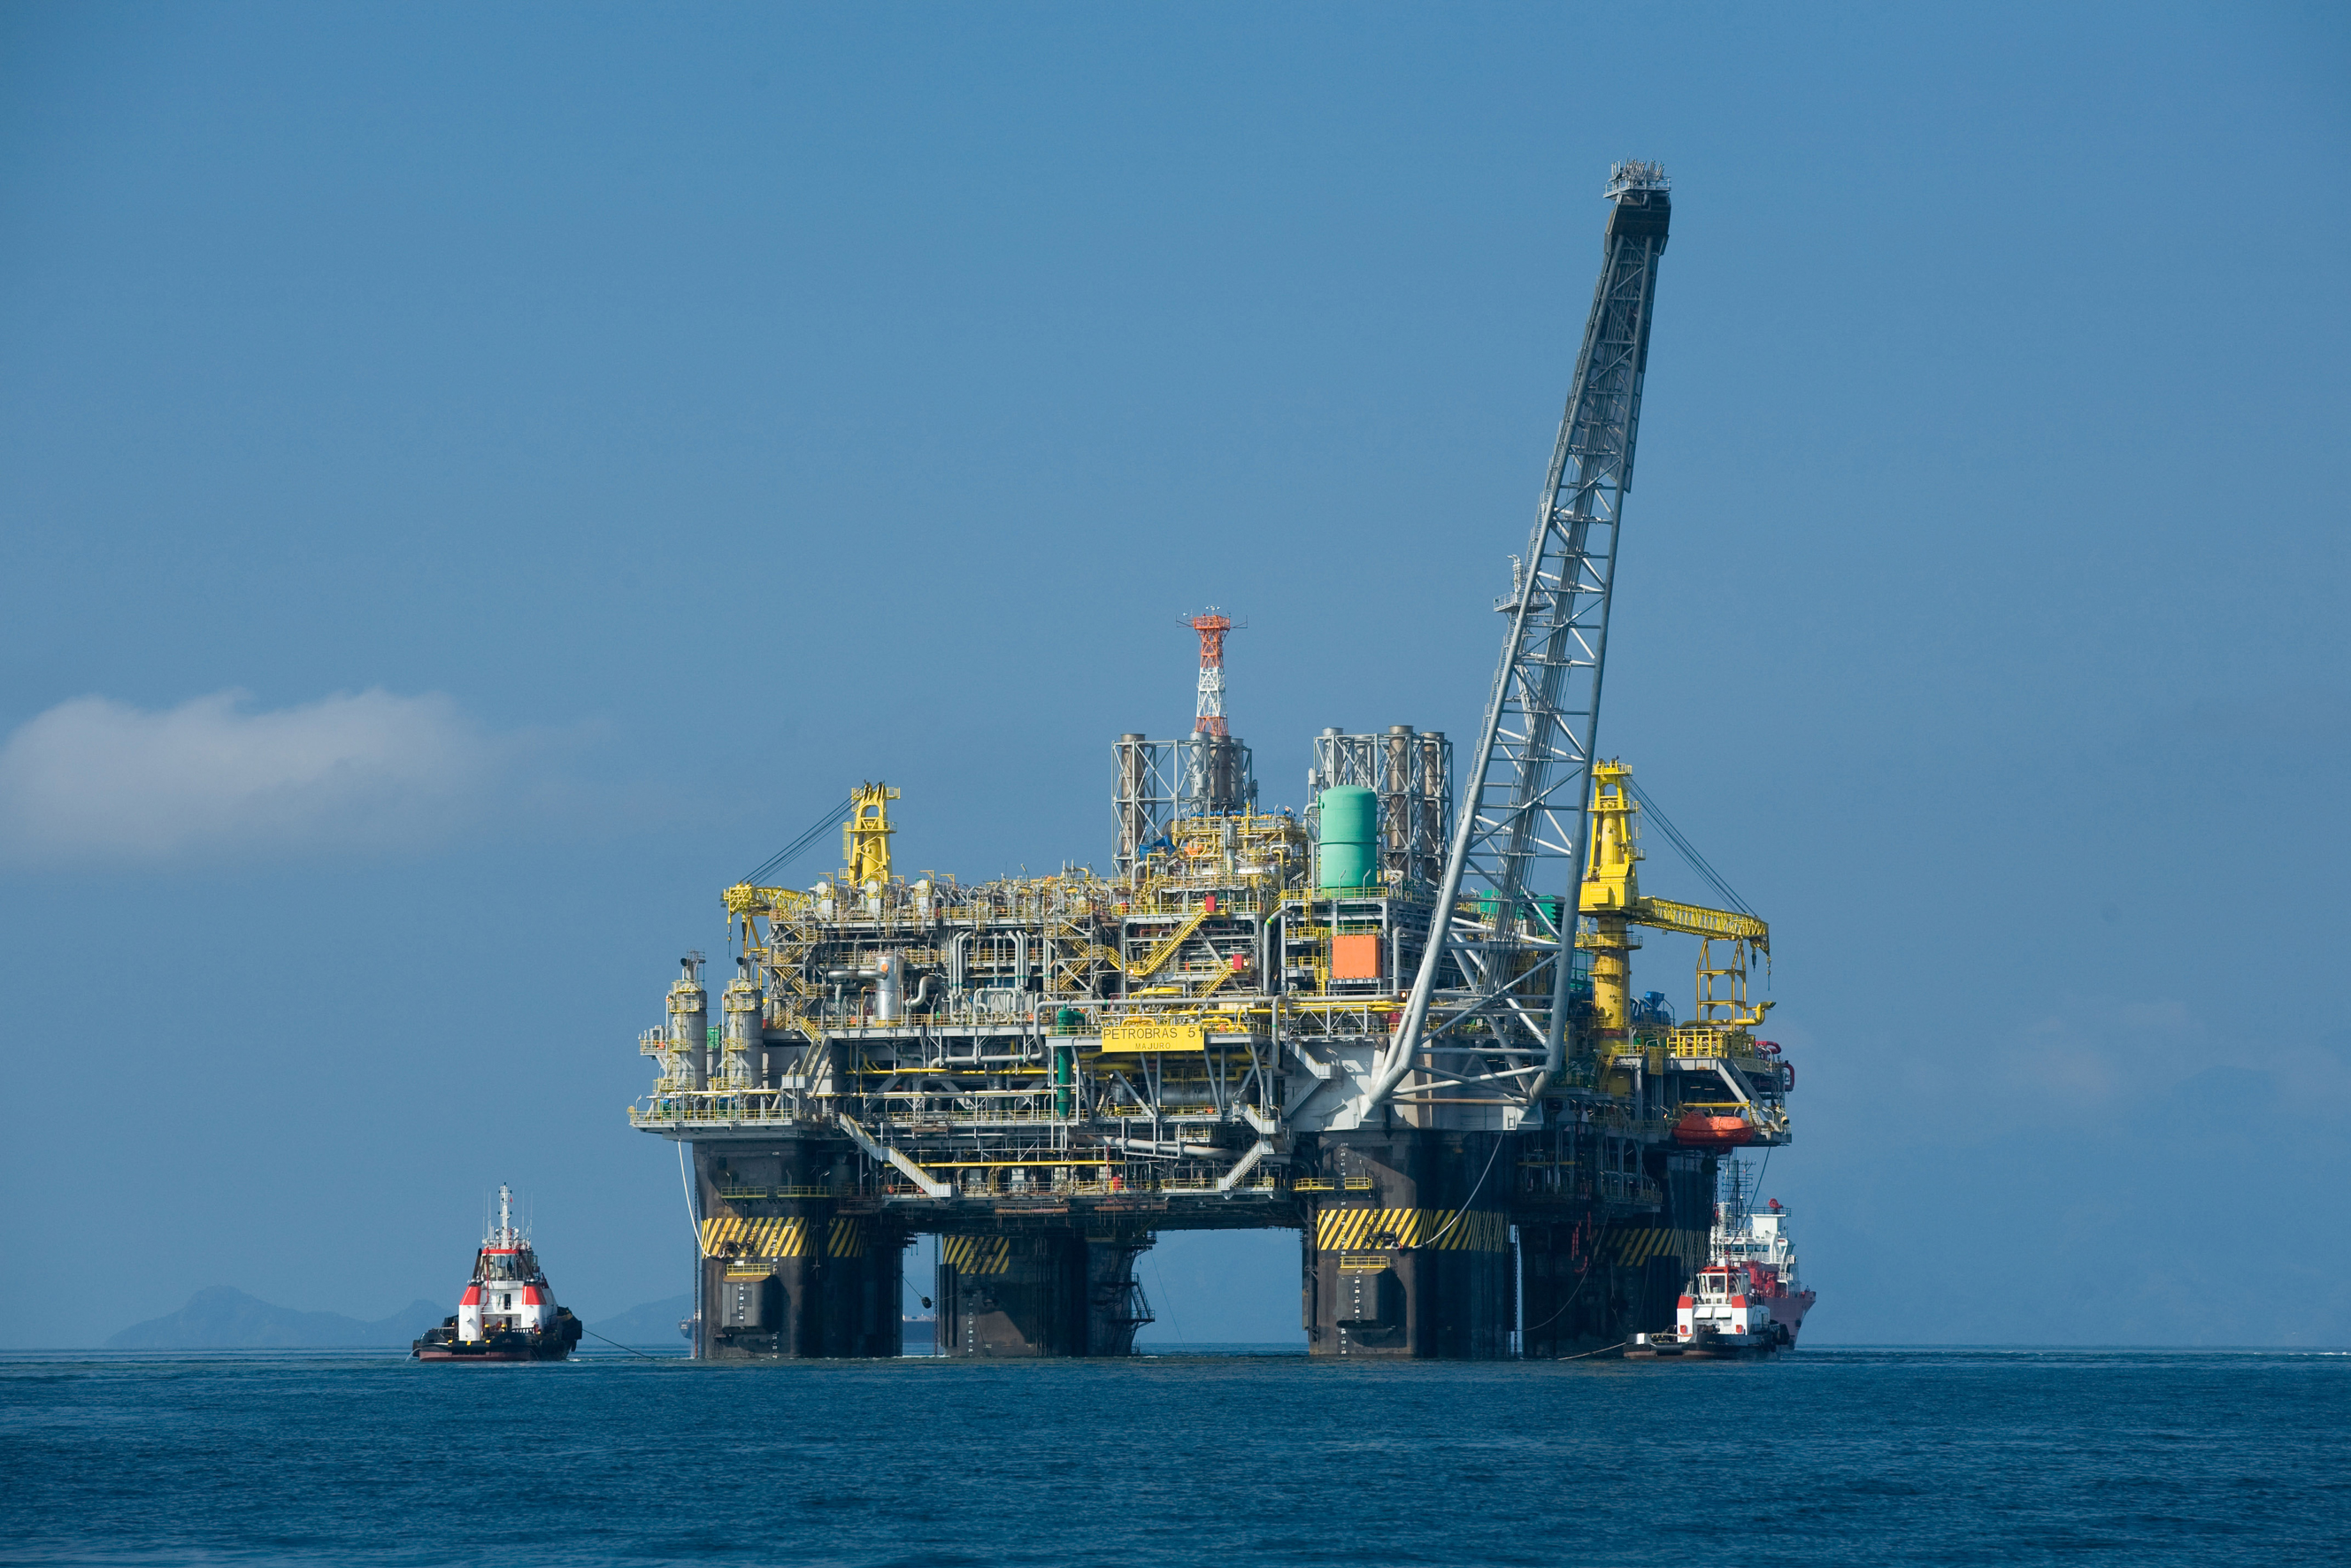 """Civil society: """"Oil companies should not author IPCC report"""""""